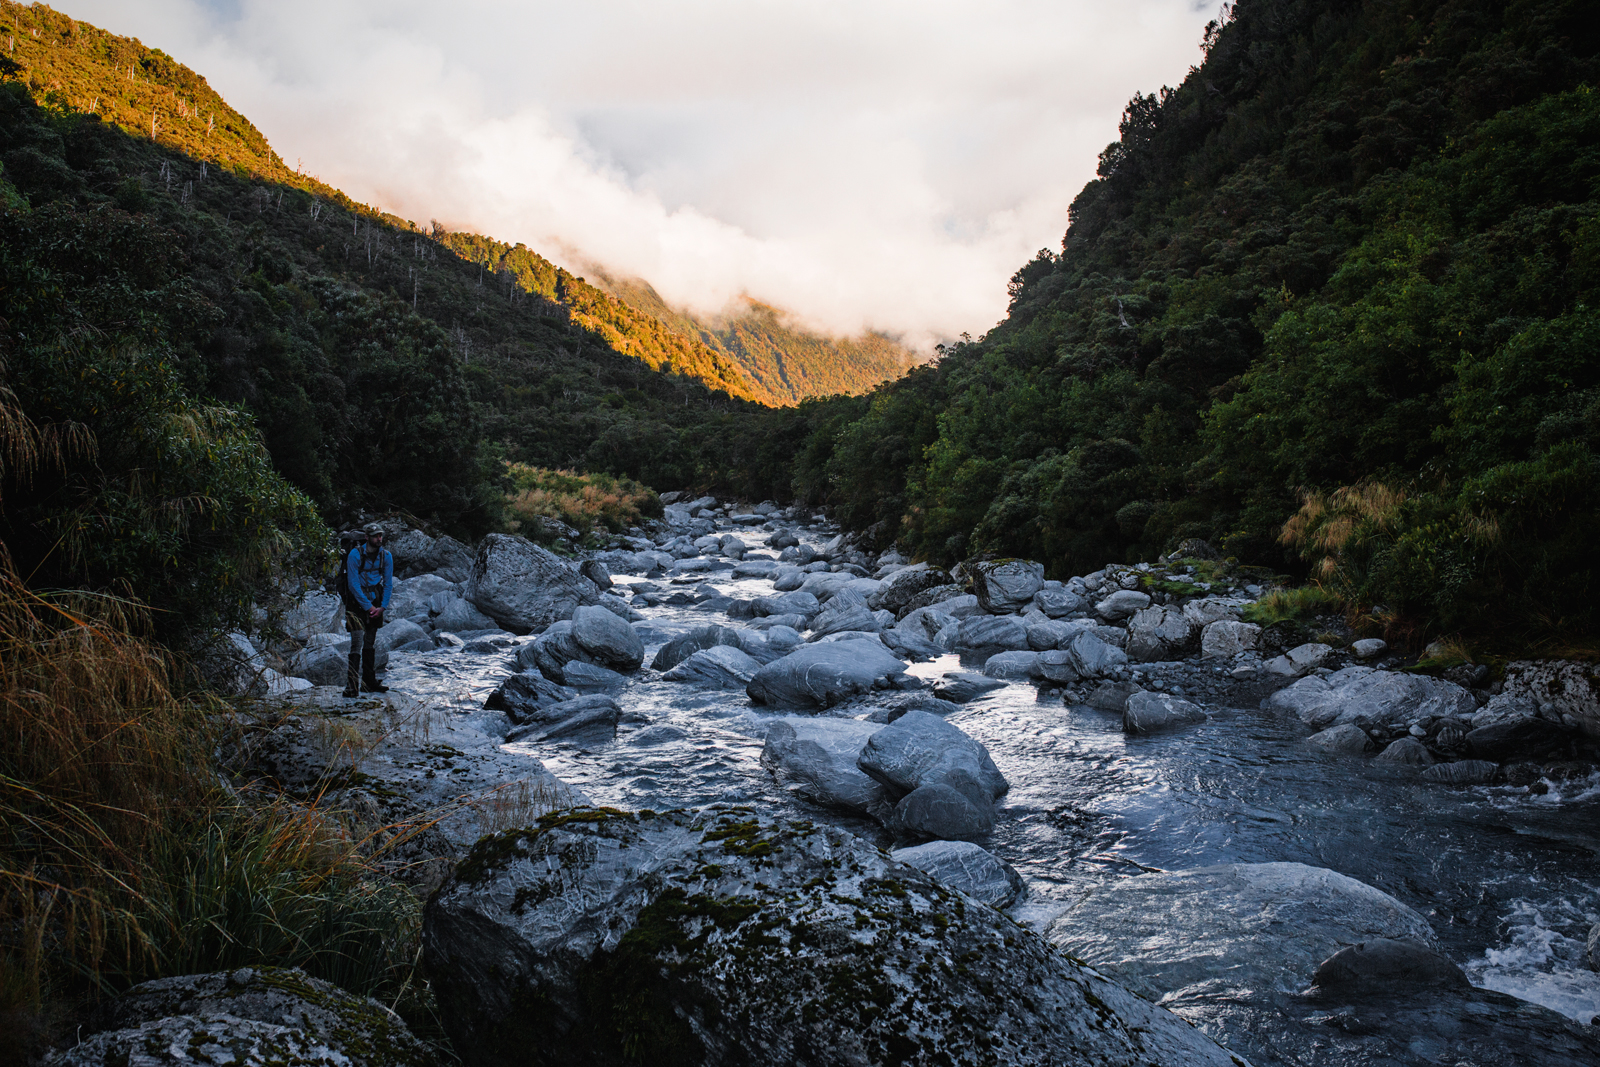 On the homeward stretch. The Toaroha, just downstream from Top Toaroha Hut.